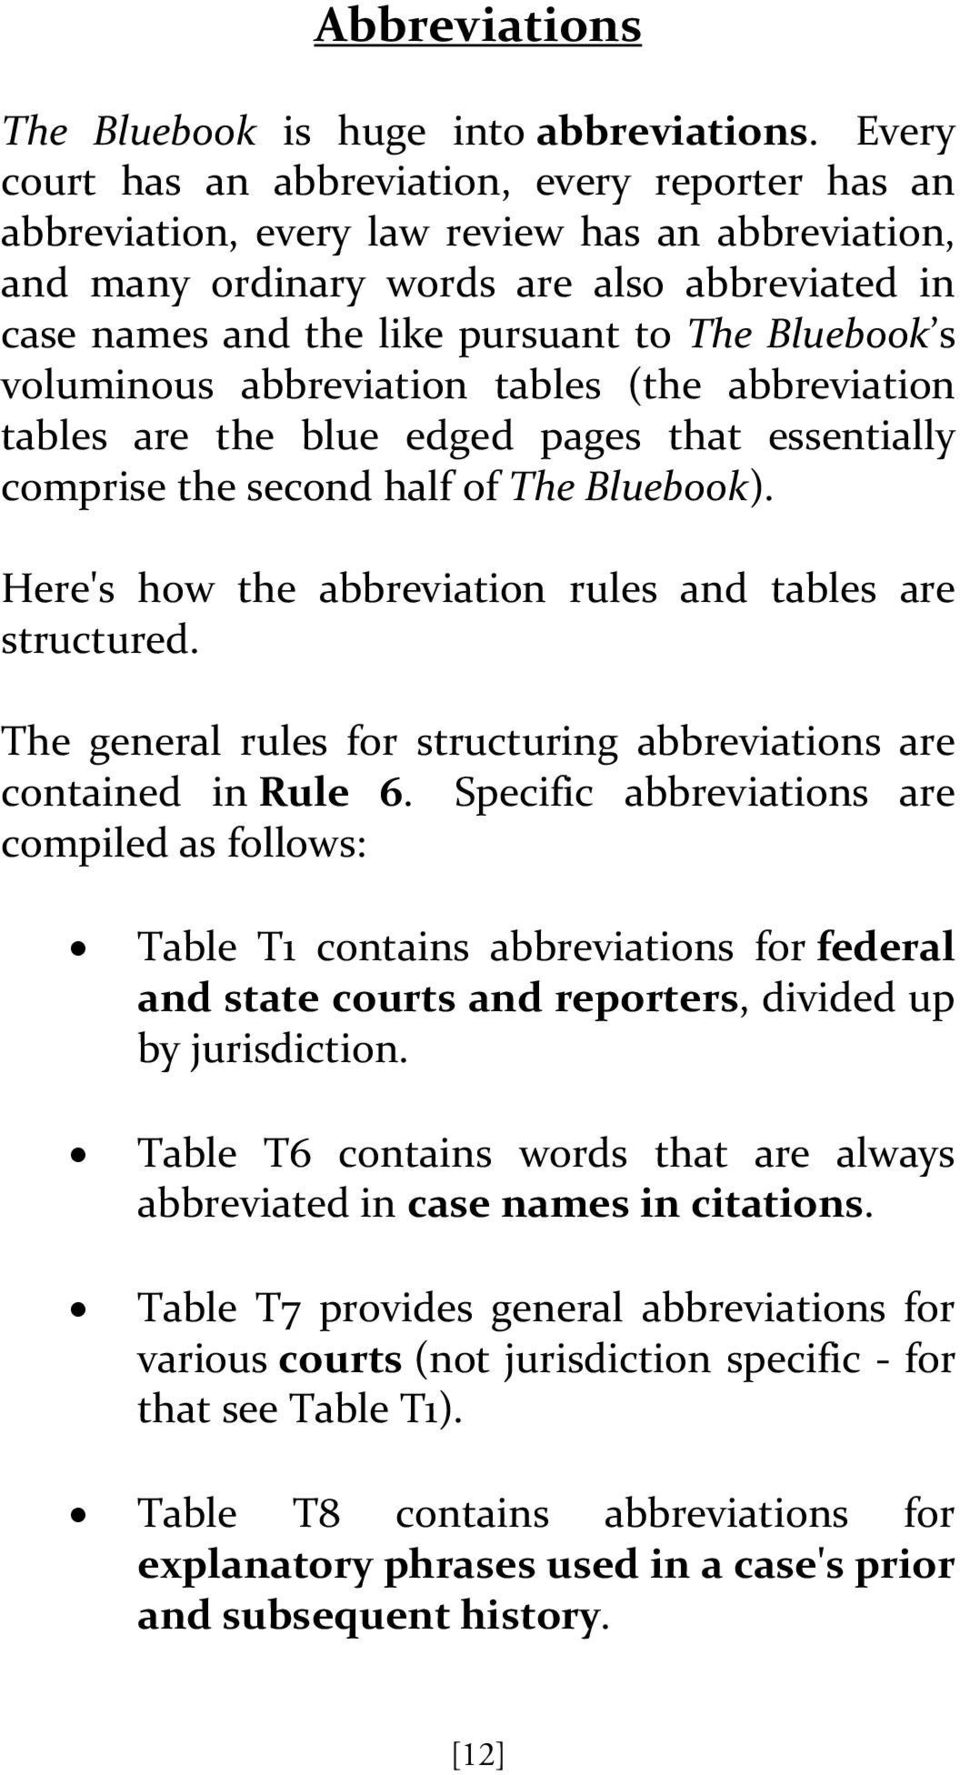 Bluebook s voluminous abbreviation tables (the abbreviation tables are the blue edged pages that essentially comprise the second half of The Bluebook).